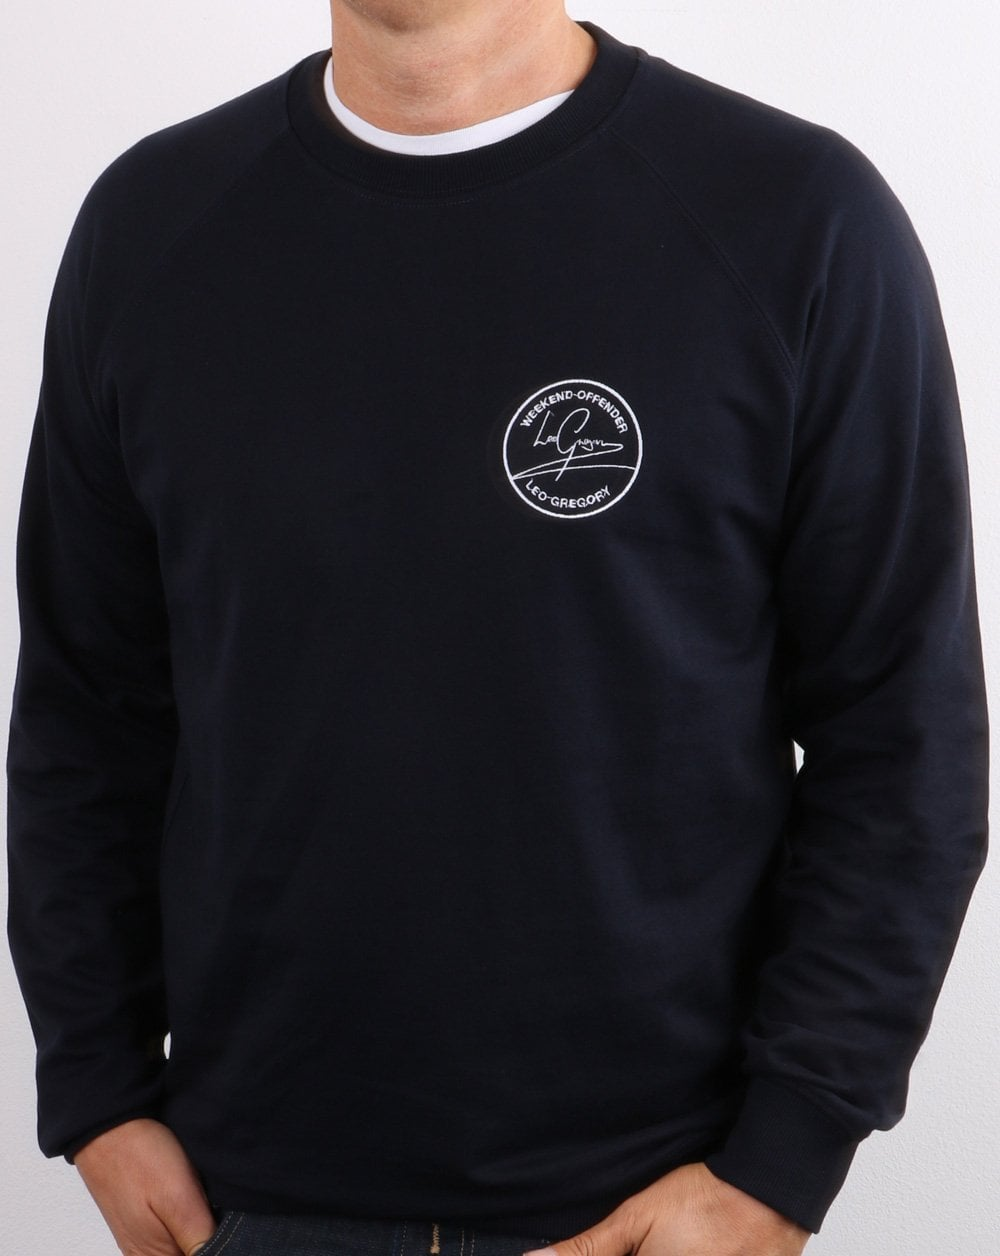 Leo Gregory x Weekend Offender Signature Sweatshirt